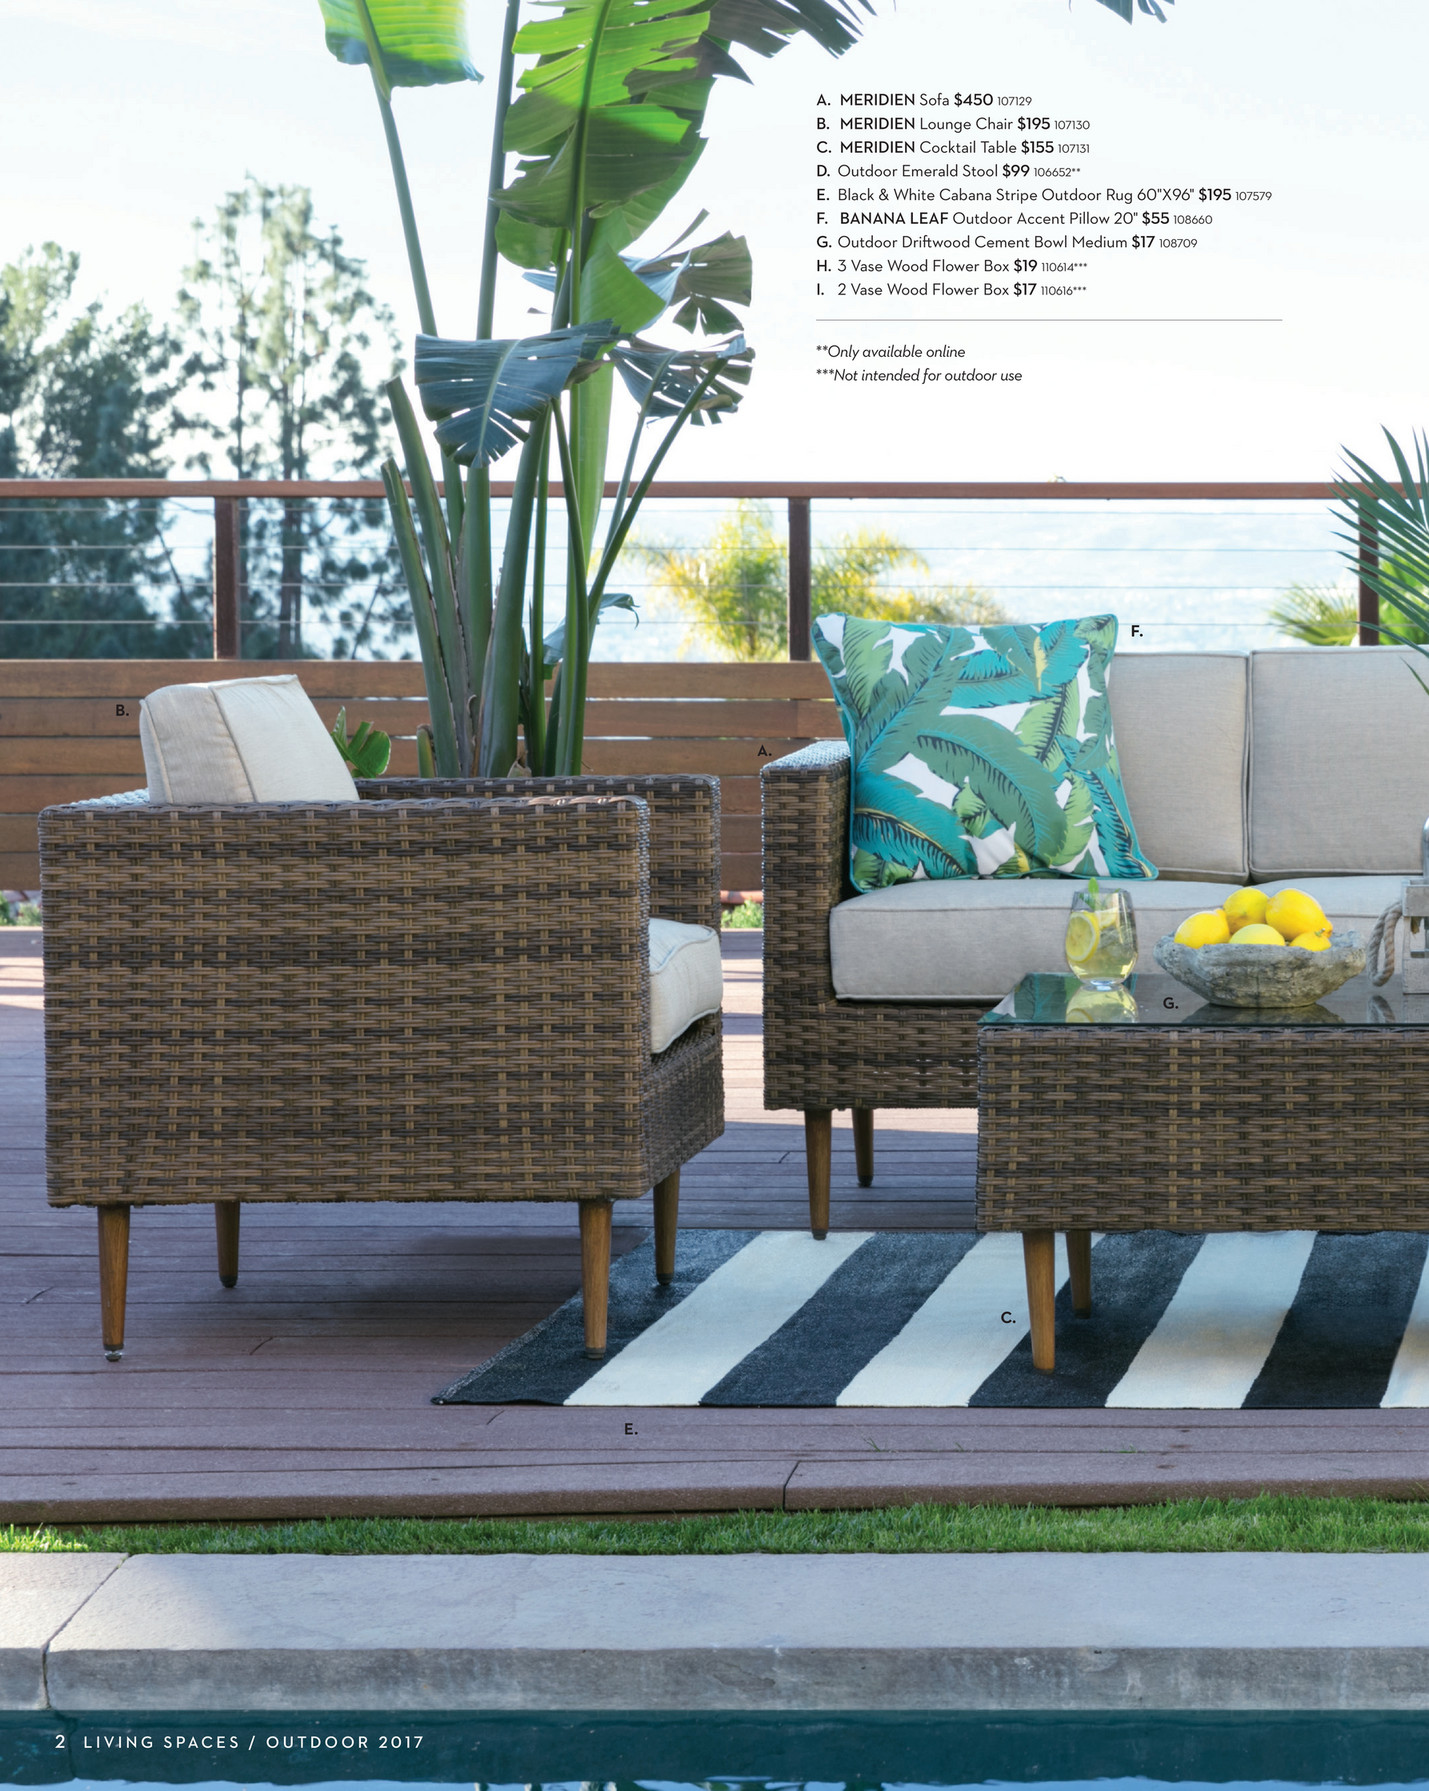 Merin Collection The Clean Lined Tapered Leg Designs Feature Powder Coated Aluminum Frames Recyclable Resin Wicker Outdoor Grade Foam Cushions